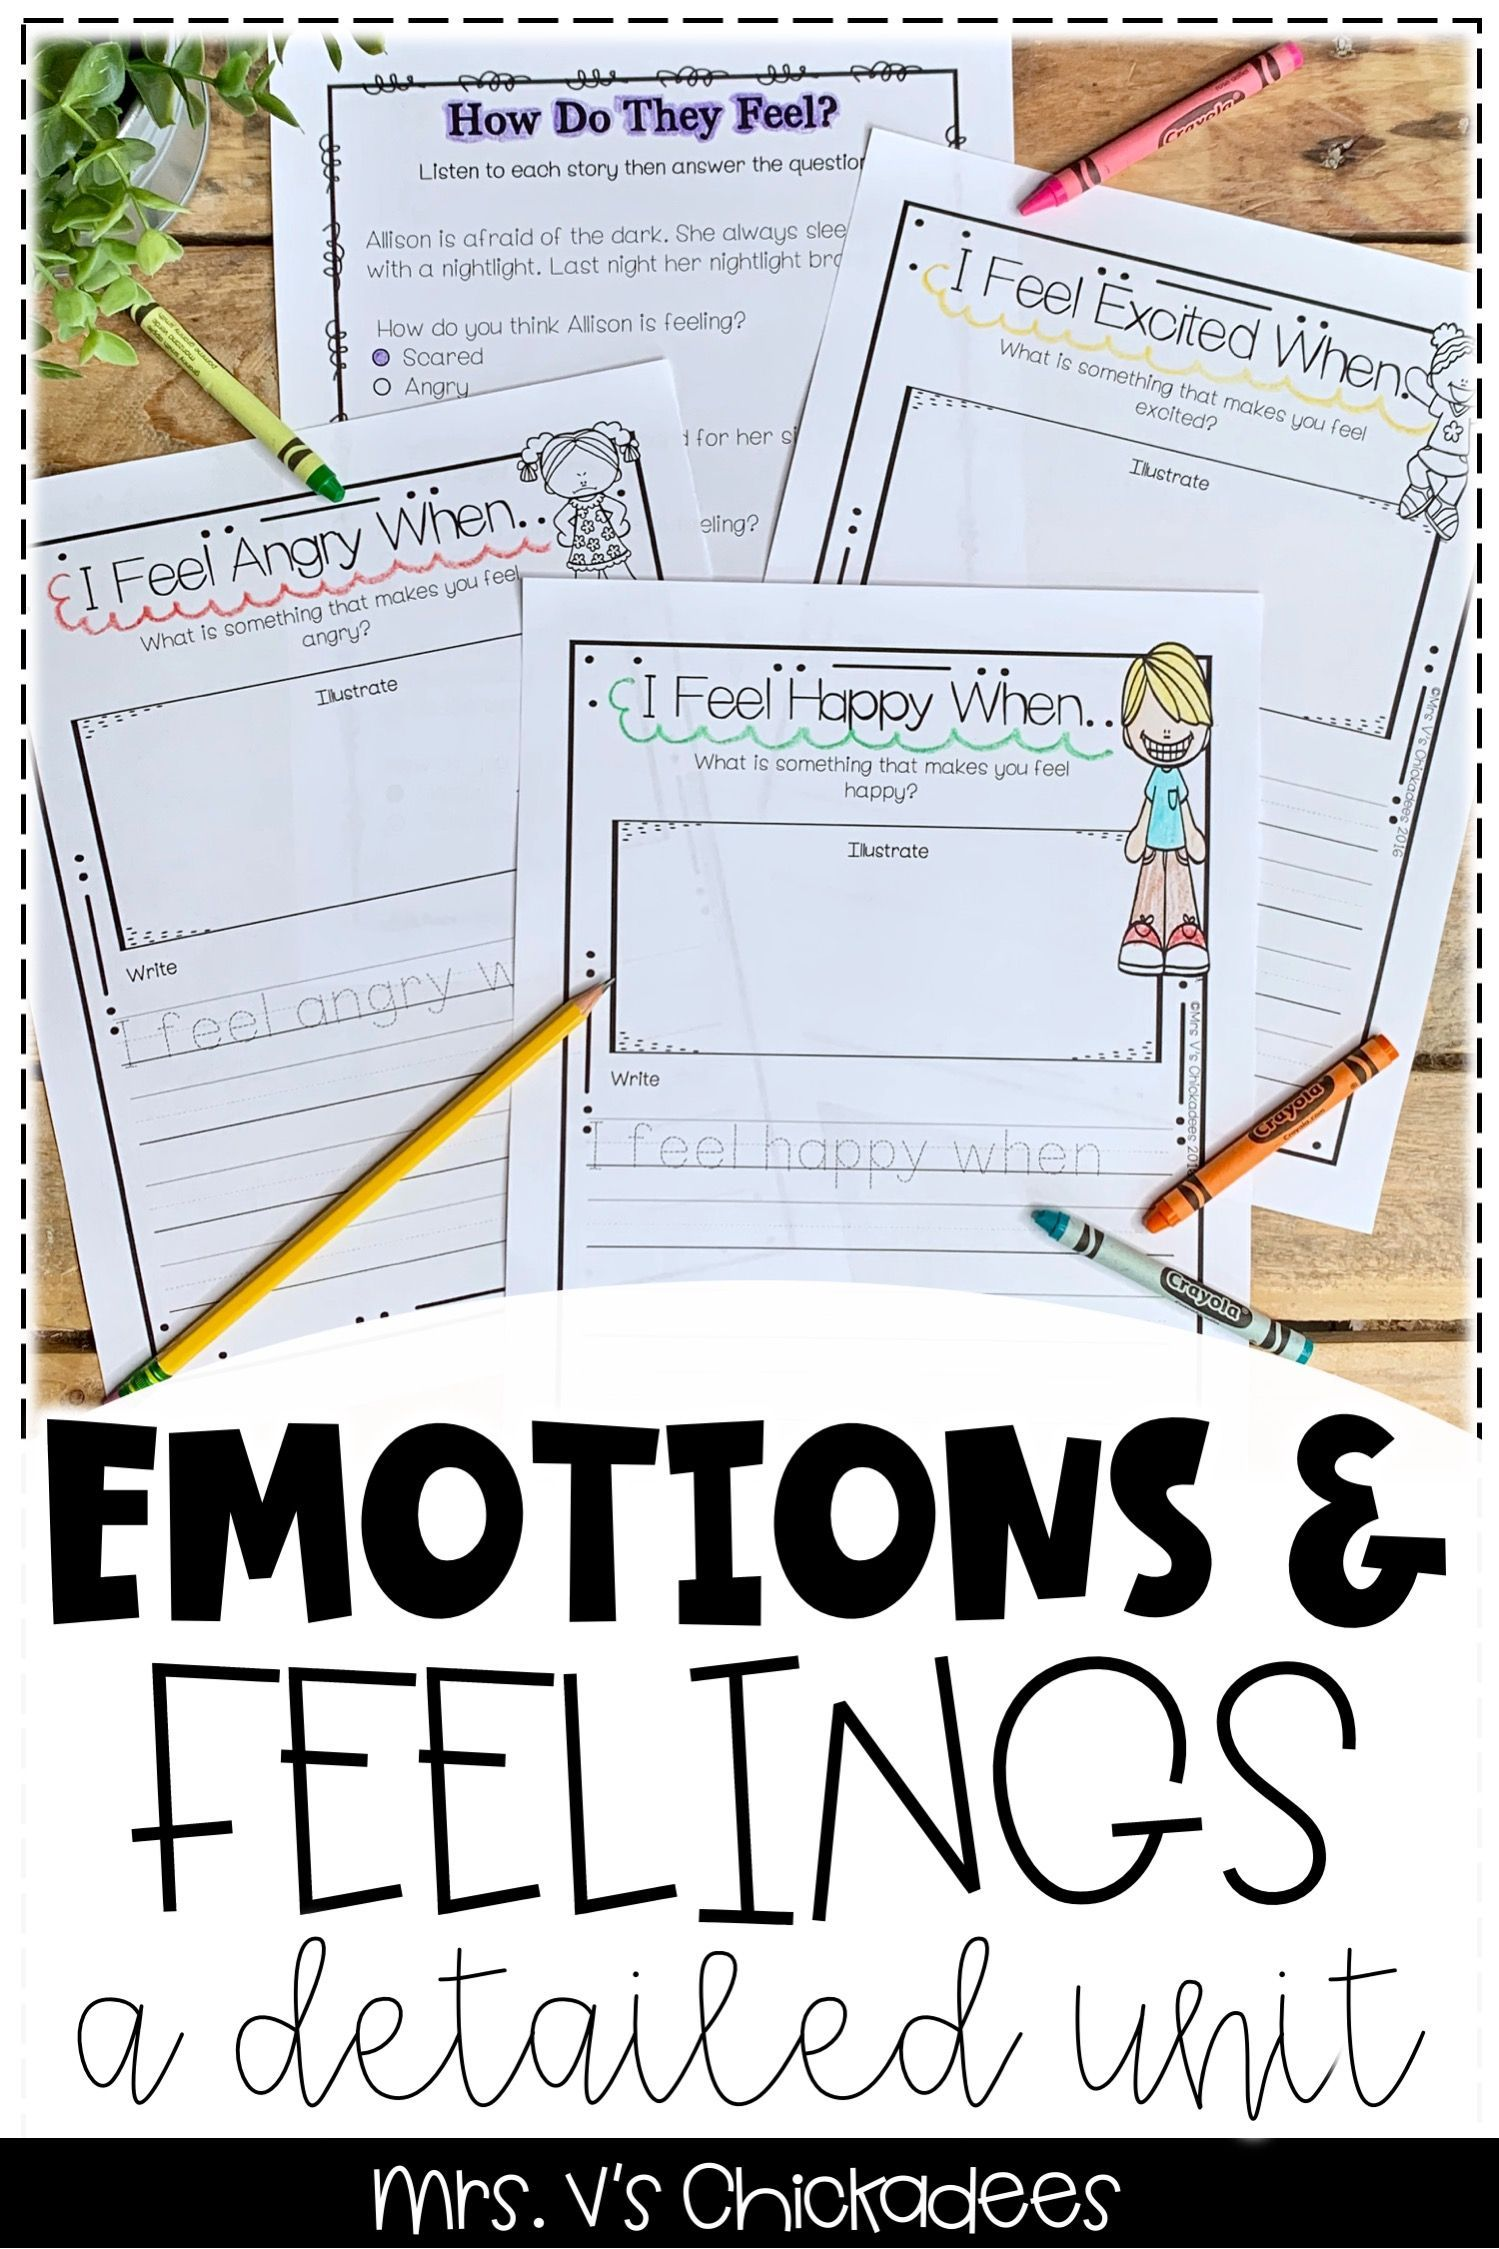 Emotions A Detailed Unit On Feelings And Emotions With